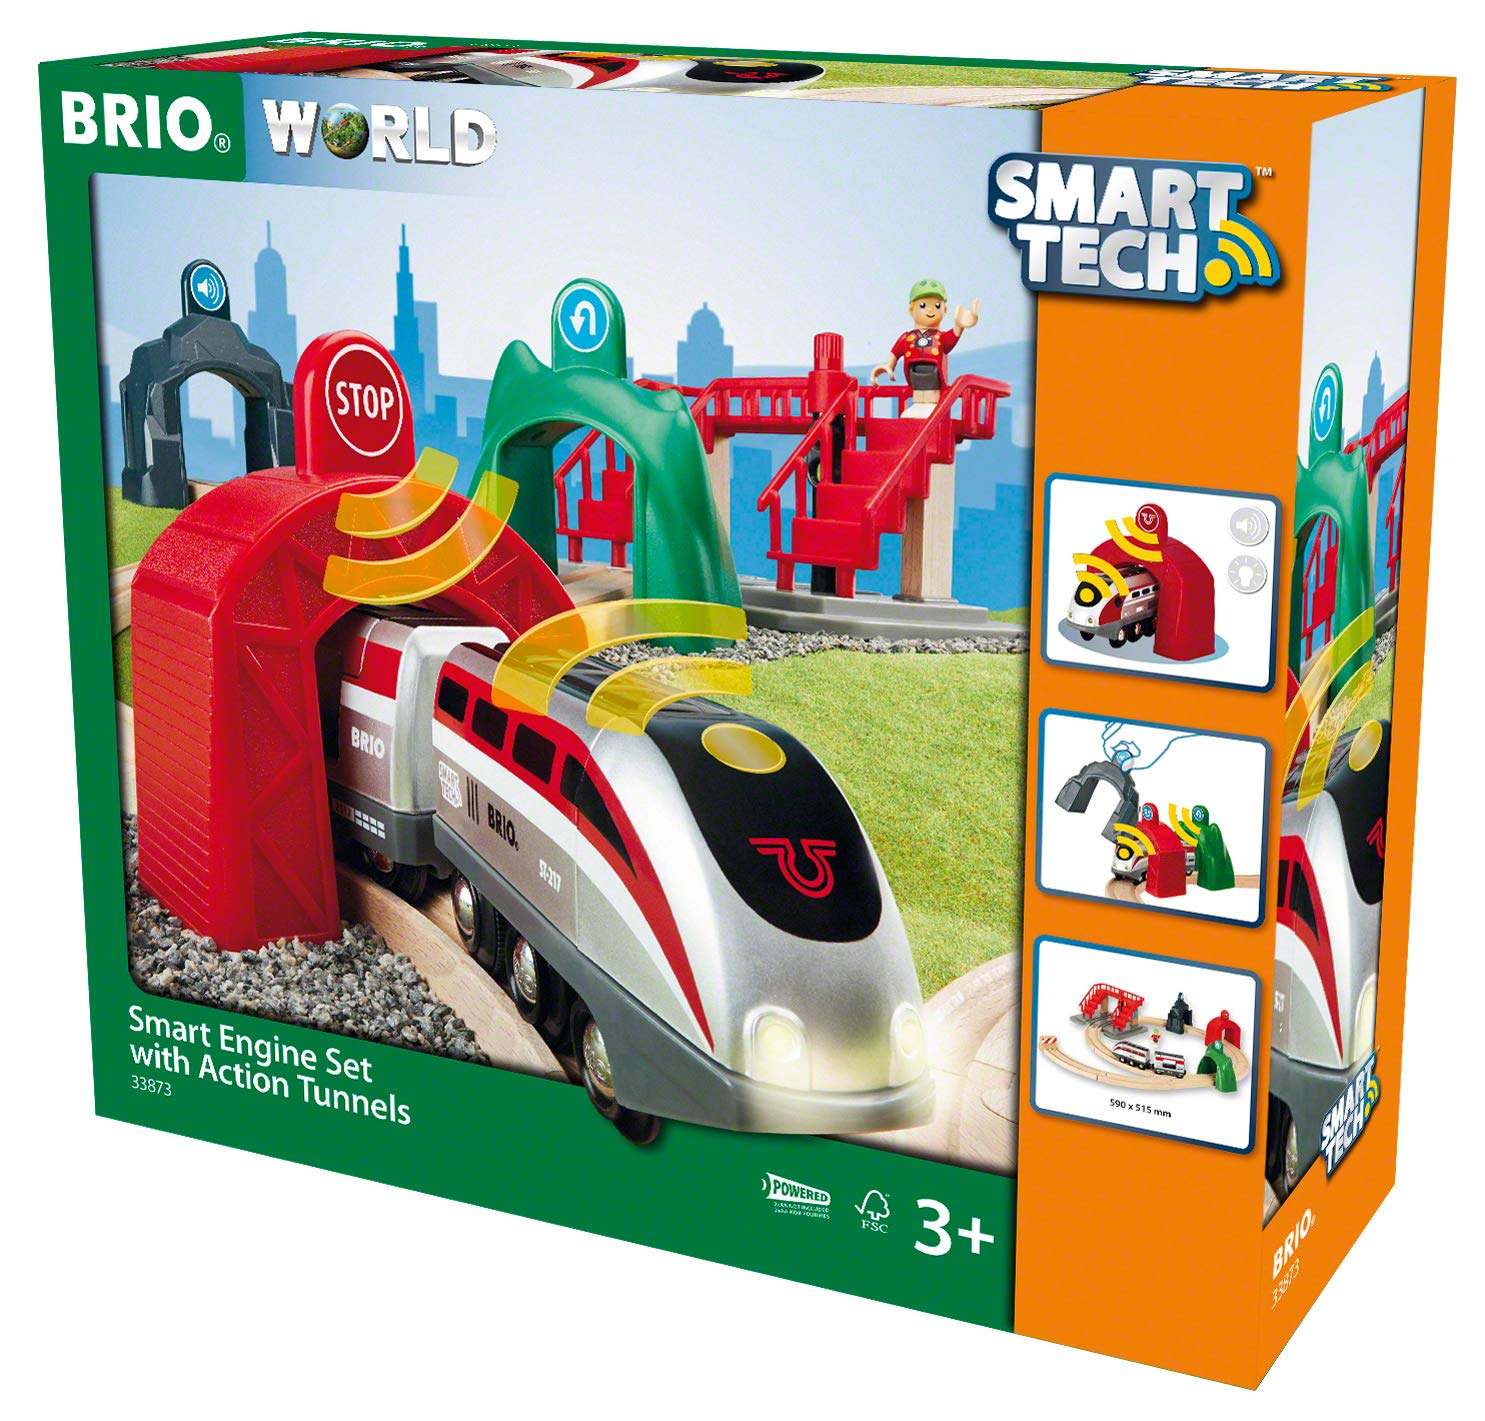 BRIO World - 33873 Smart Tech Engine Set with Action Tunnels   17 Piece Train Toy with Accessories and Wooden Tracks for Kids Age 3 and Up